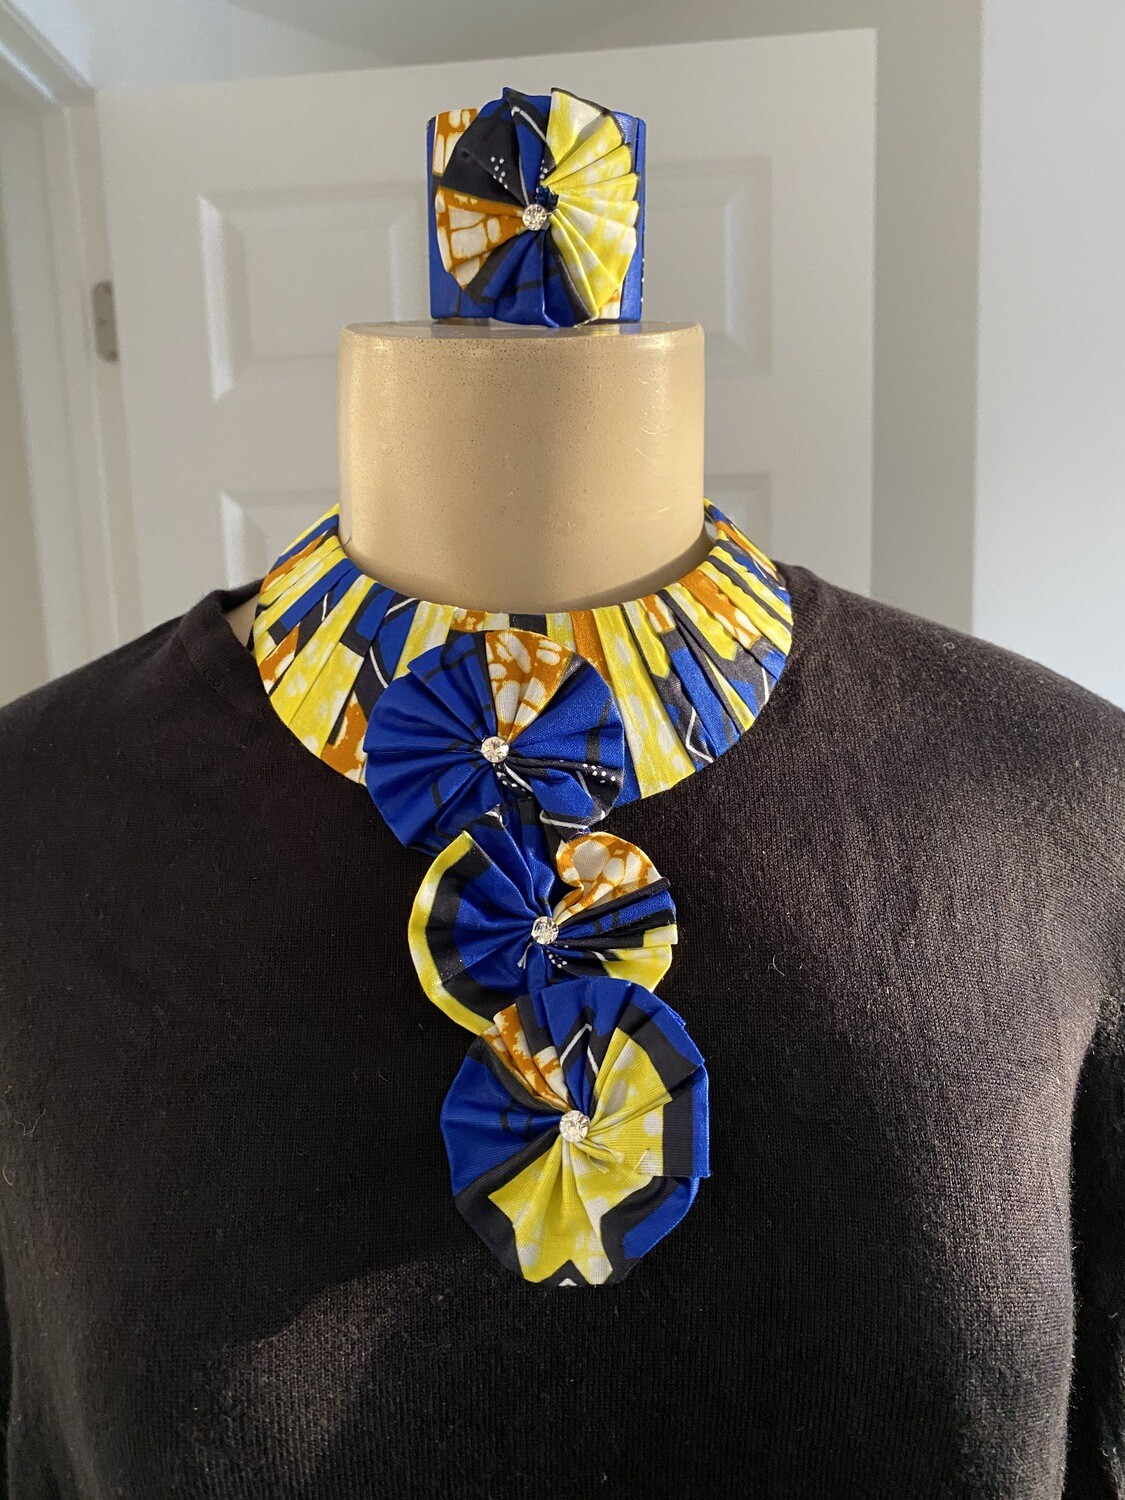 African Style Pattern Fabric Bib Necklace | Cuff Bracelet Included| Jewelry | Birthday Gifts|